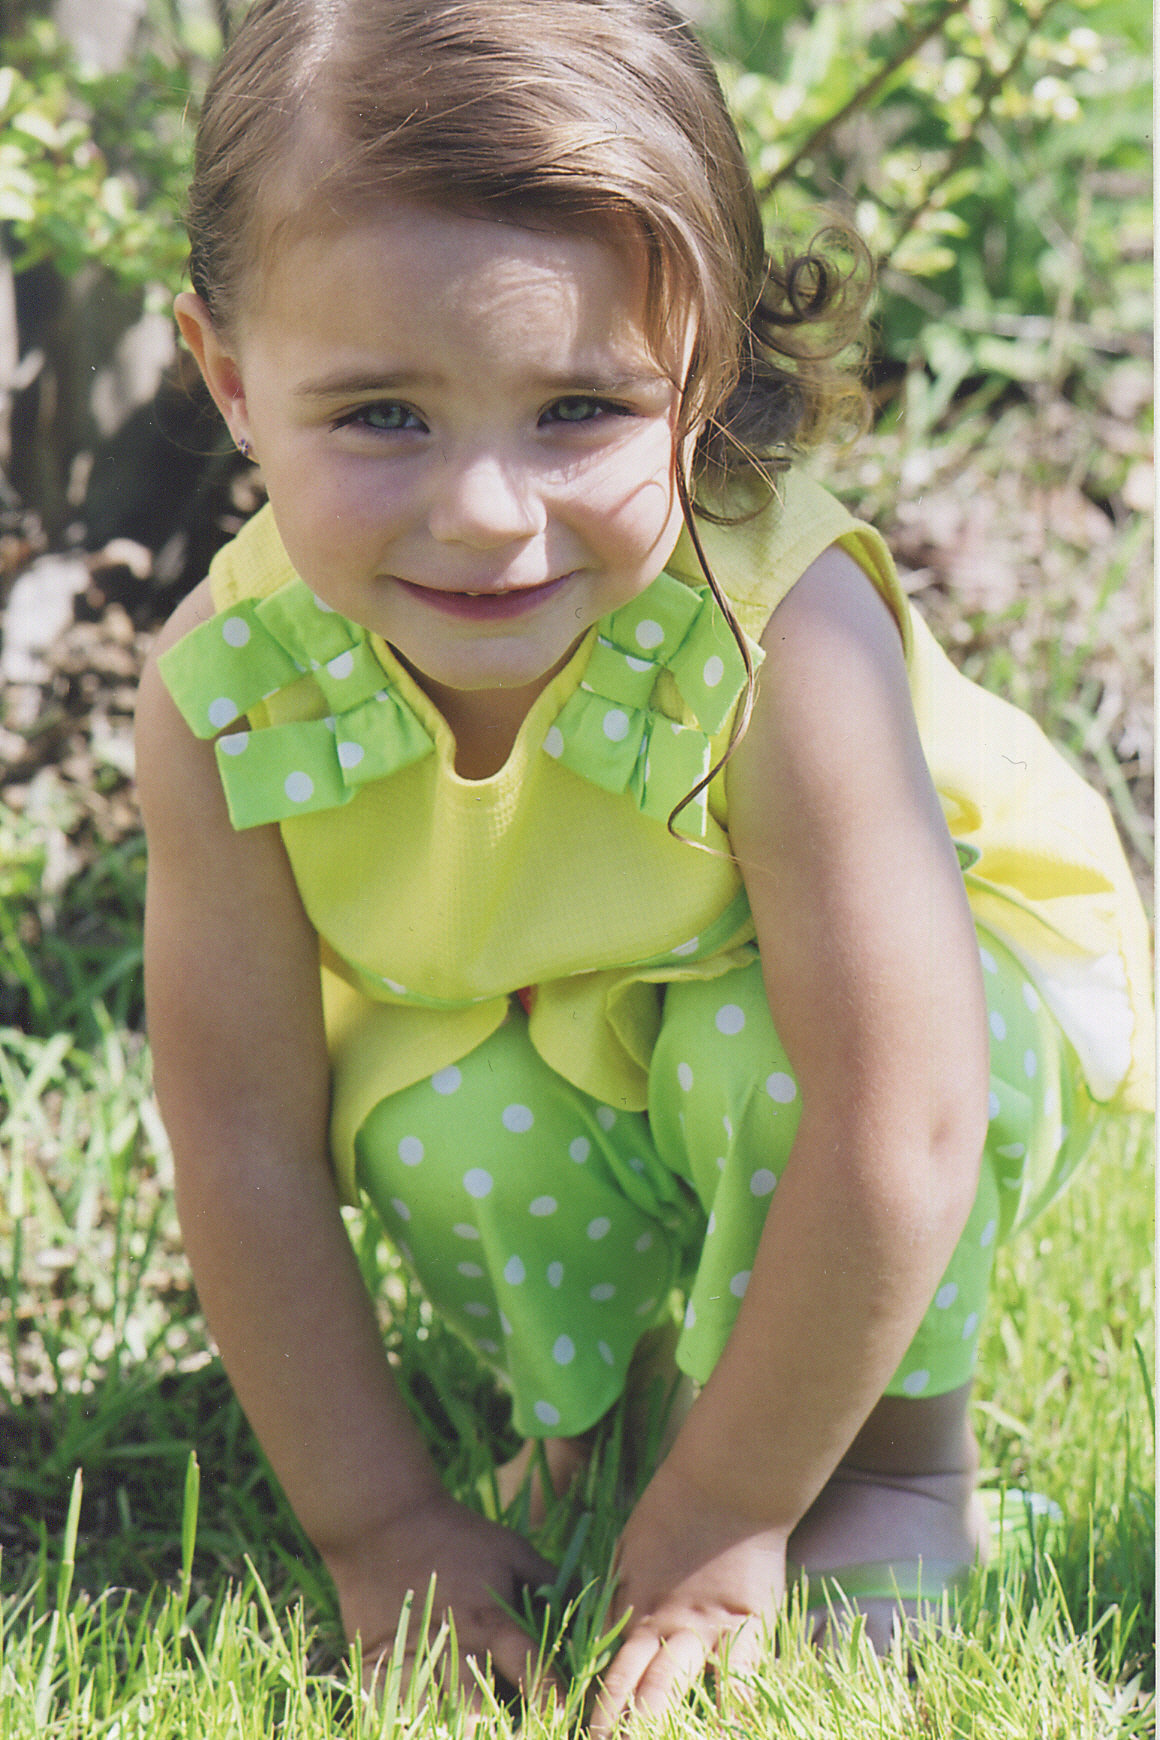 BAILEY MICHELLE BROWN- Child star known for See Dad Run.